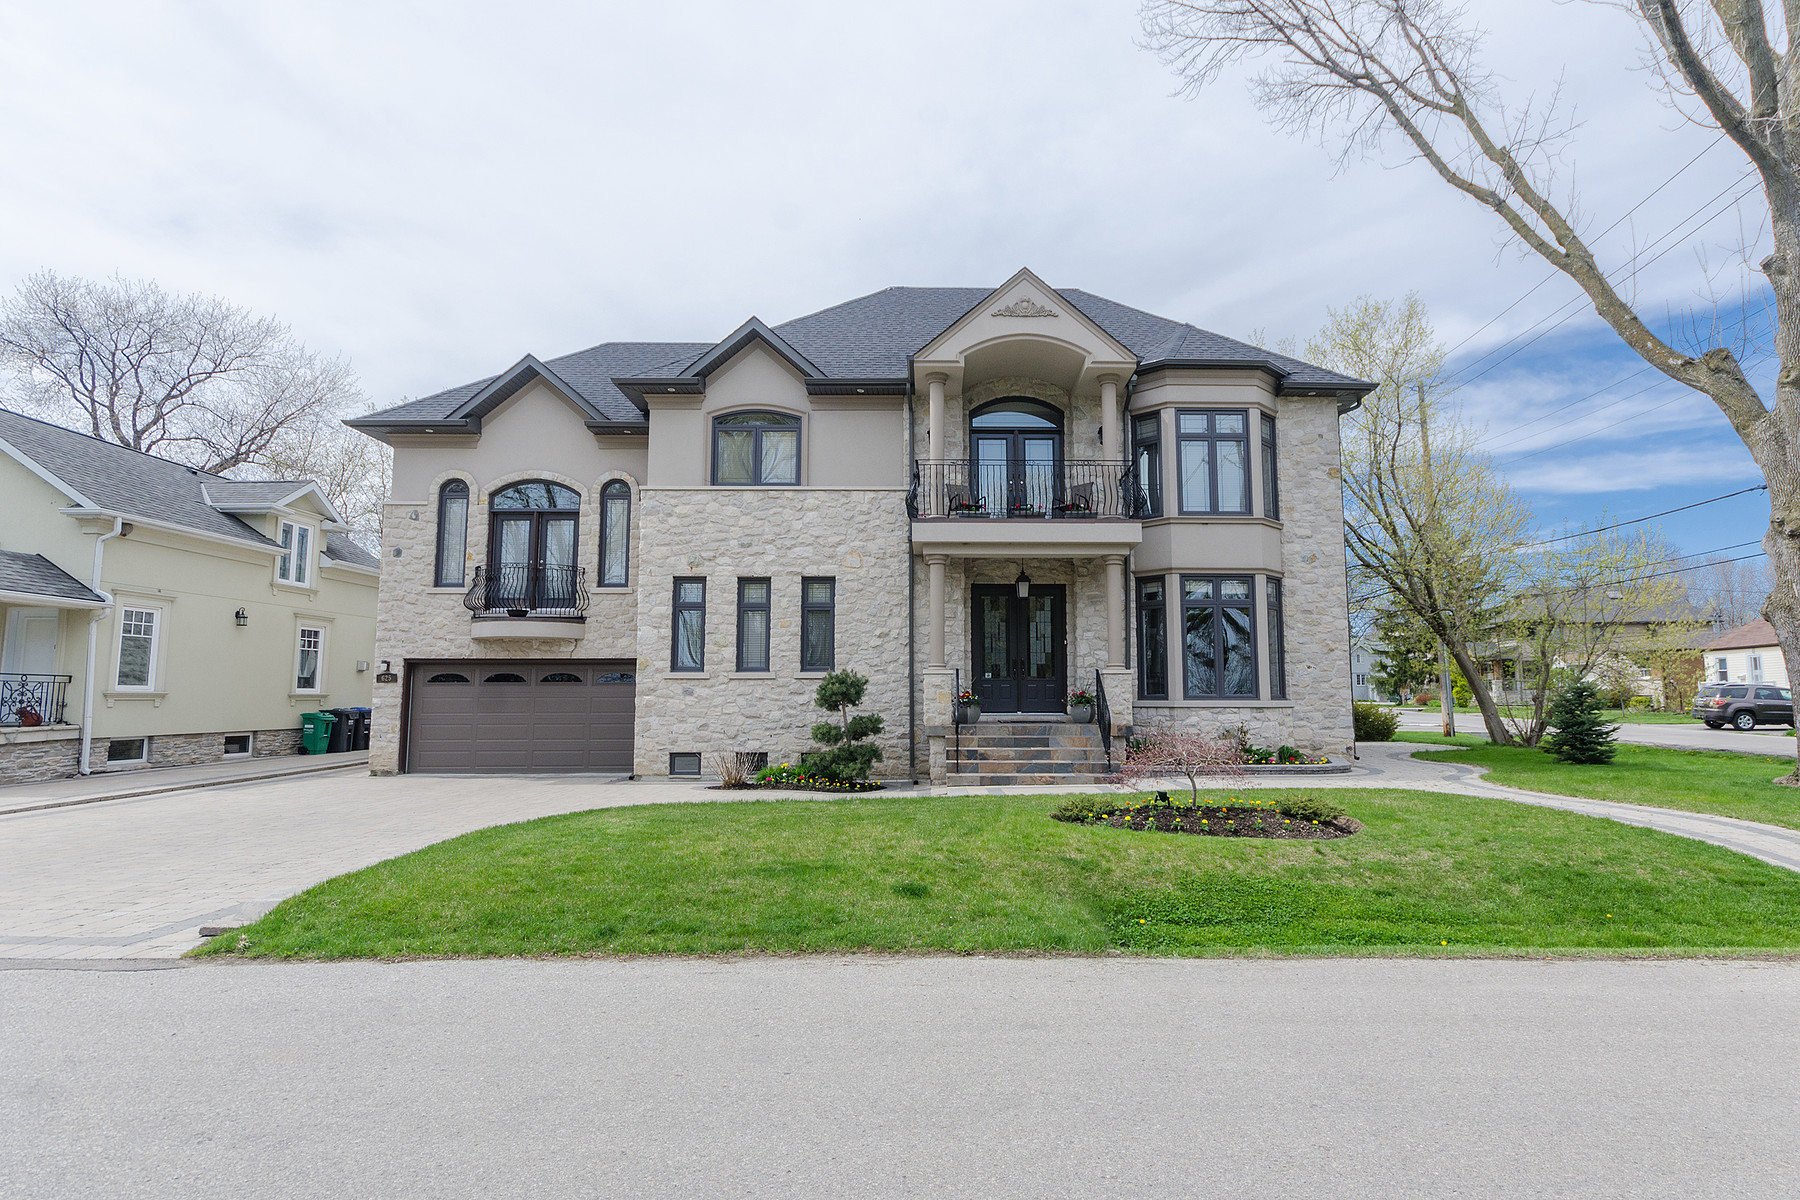 Single Family Home for Sale at Custom Built in Mississauga 625 Lakeside Ave Mississauga, Ontario, L5G4H6 Canada